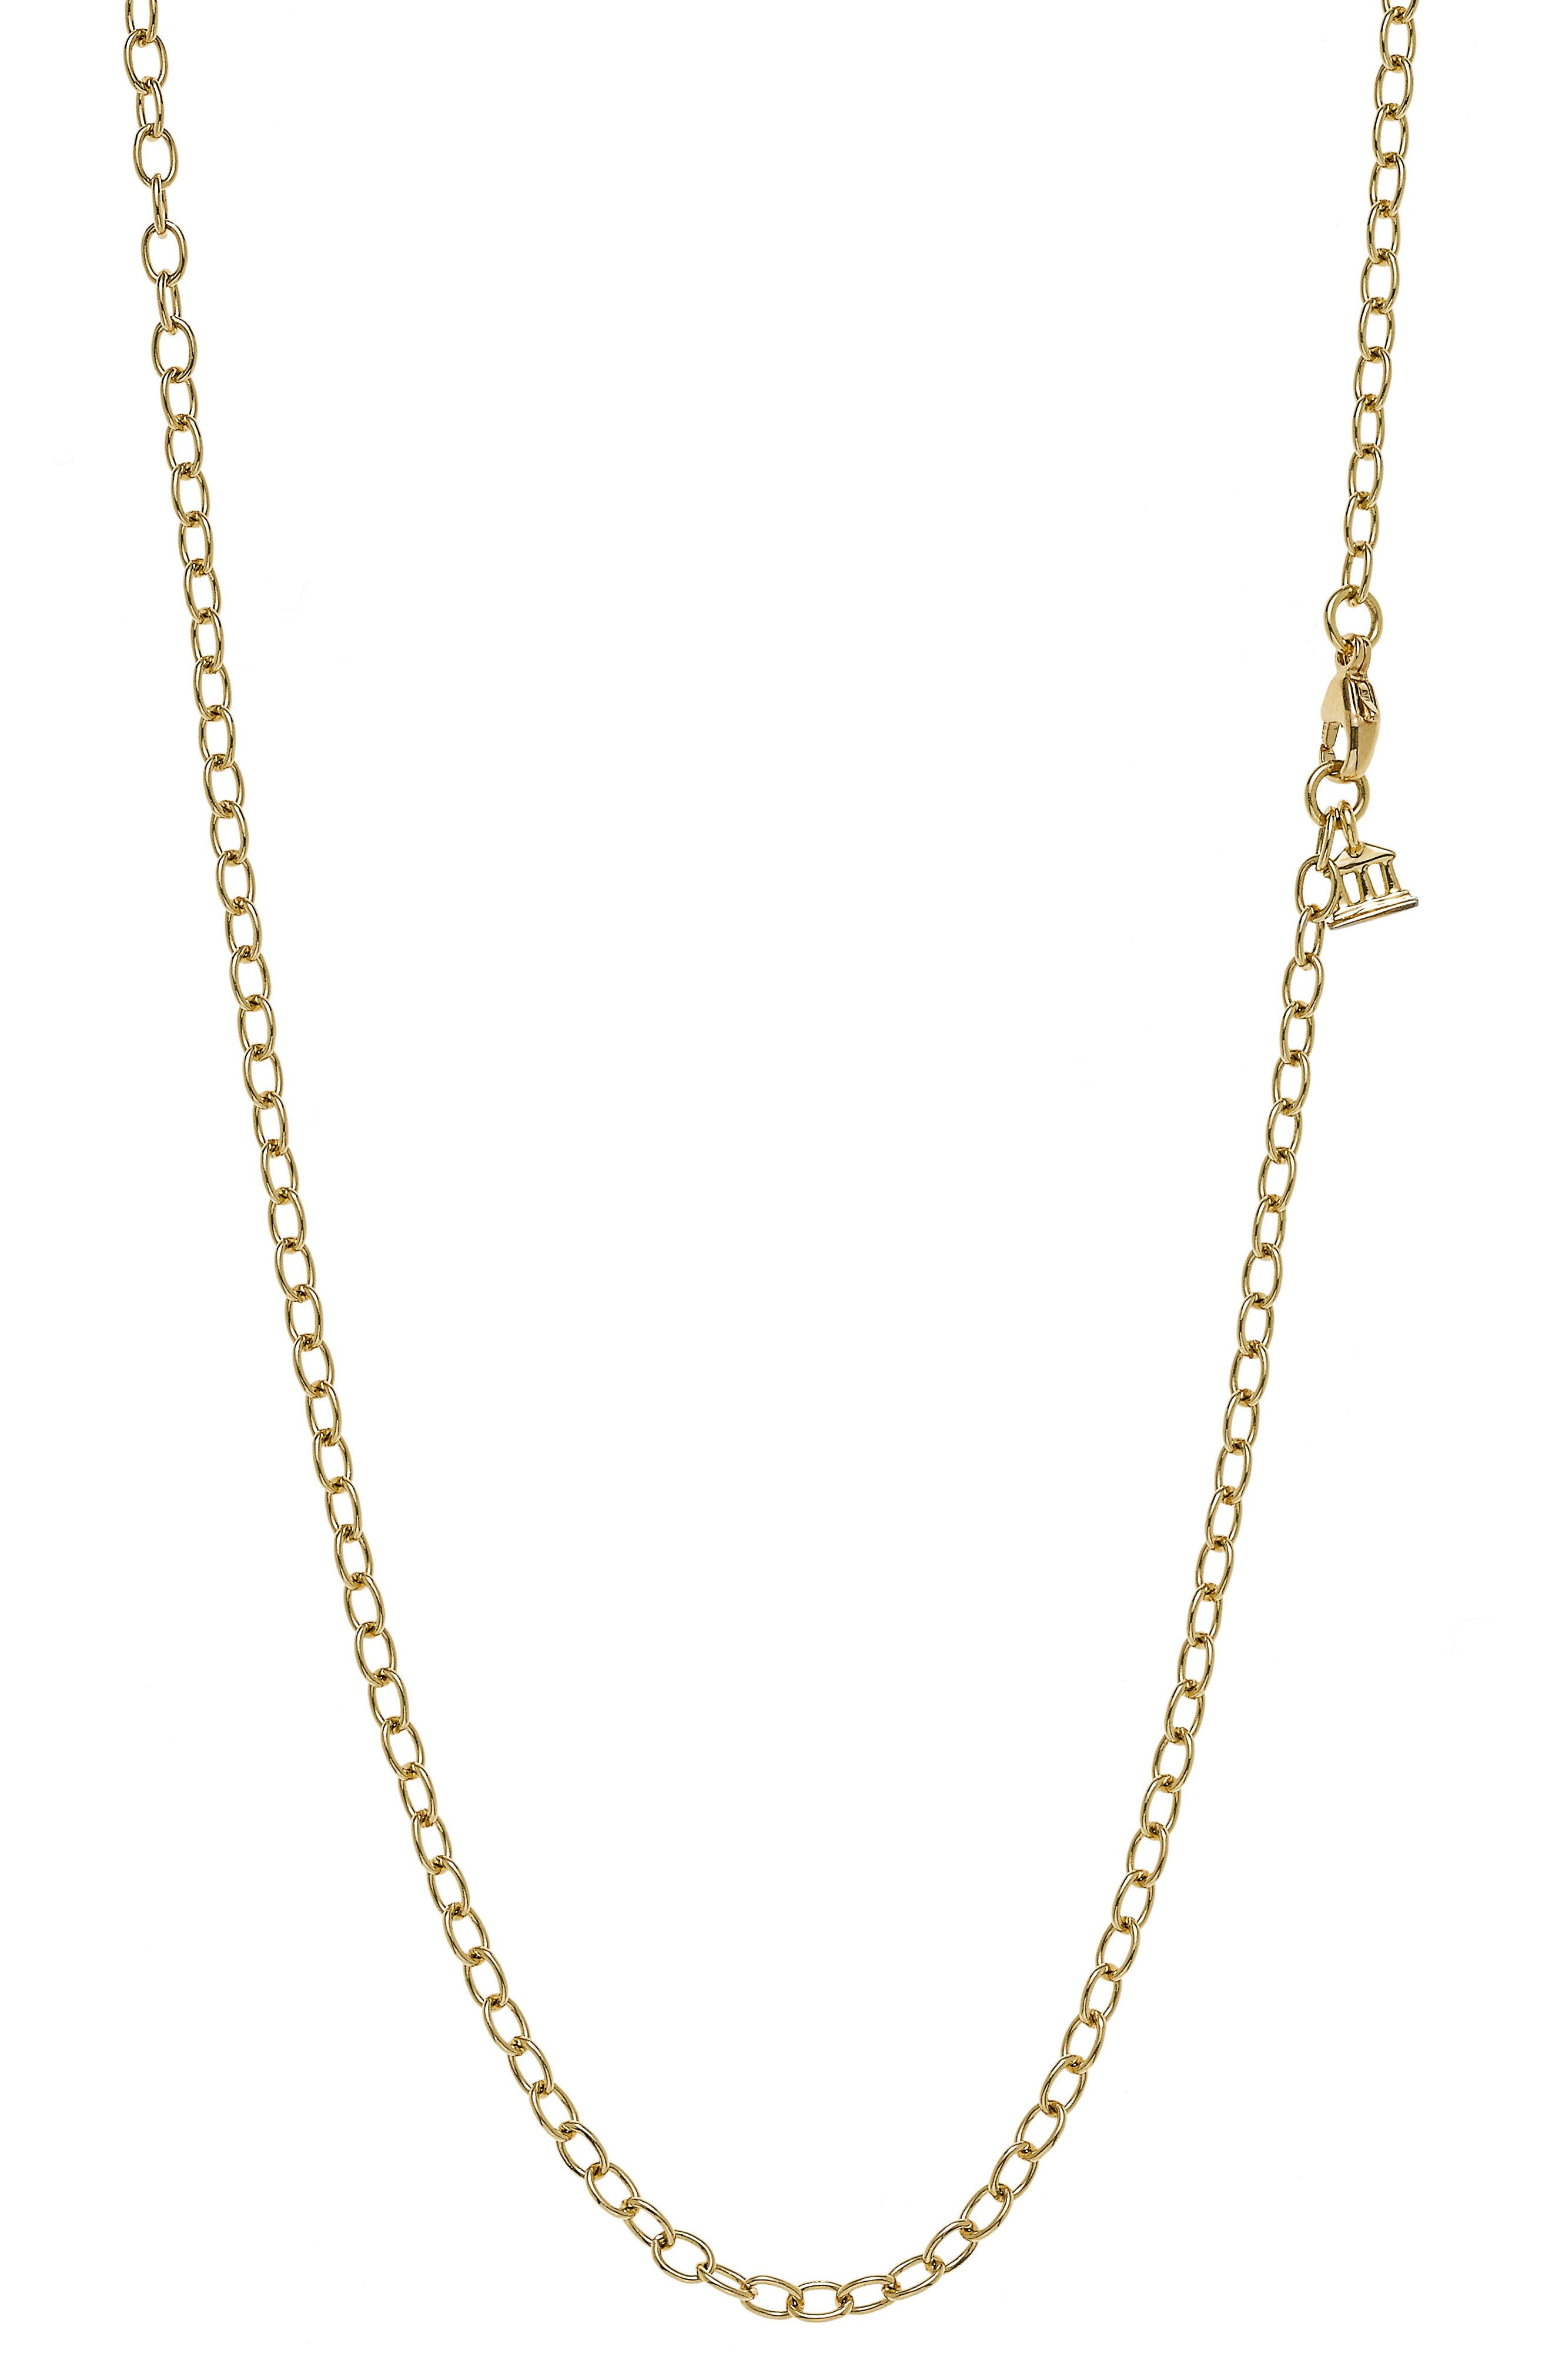 Main Image - Temple St. Clair 18-Inch Oval Chain Necklace